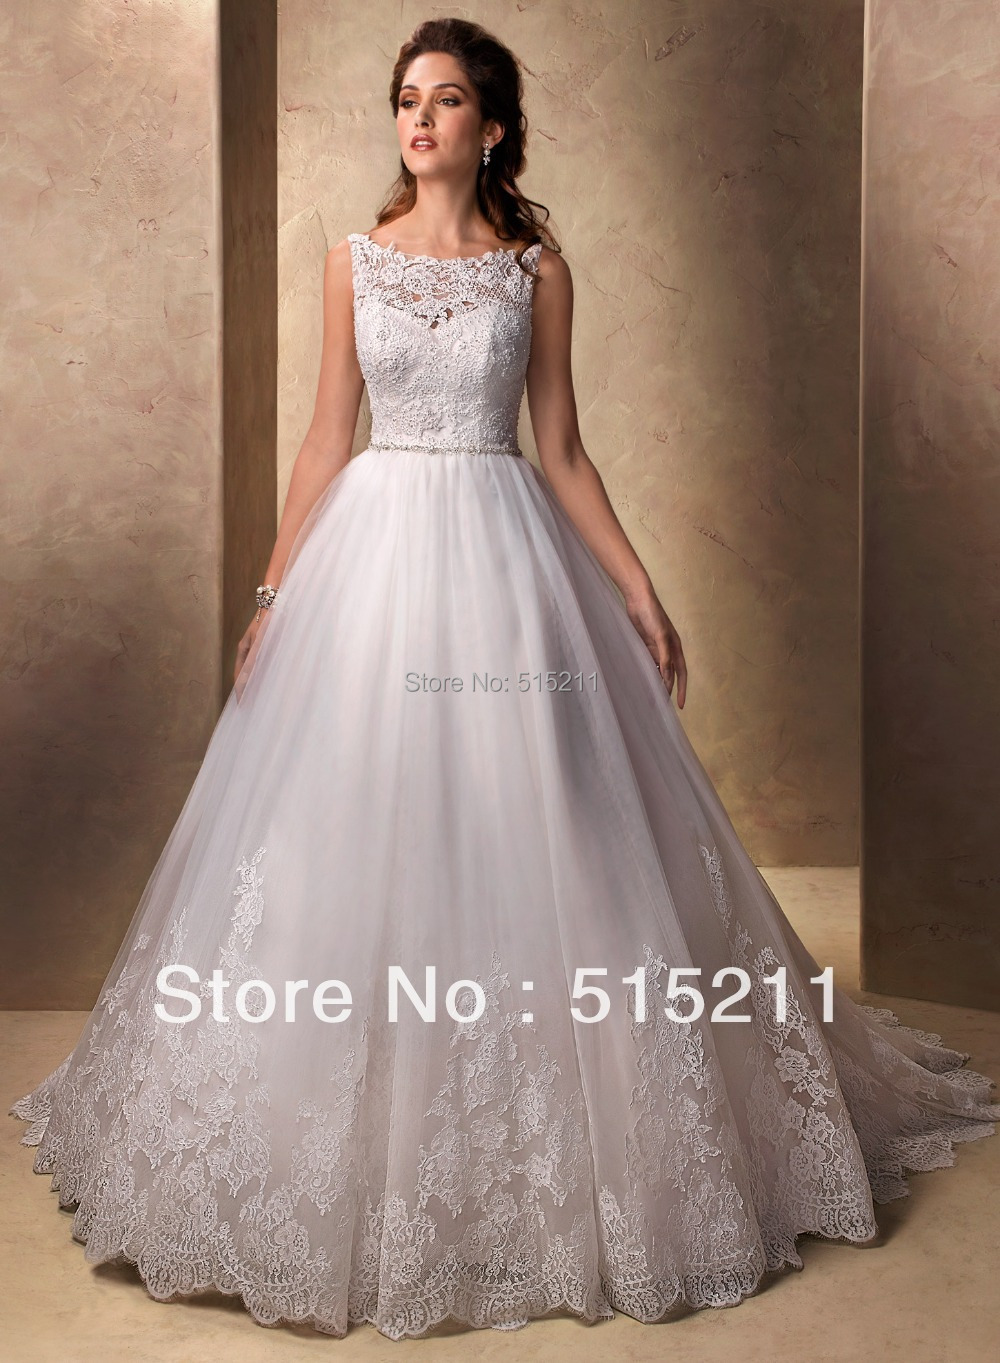 Compare Prices on Vintage Style Lace Wedding Dress- Online ...